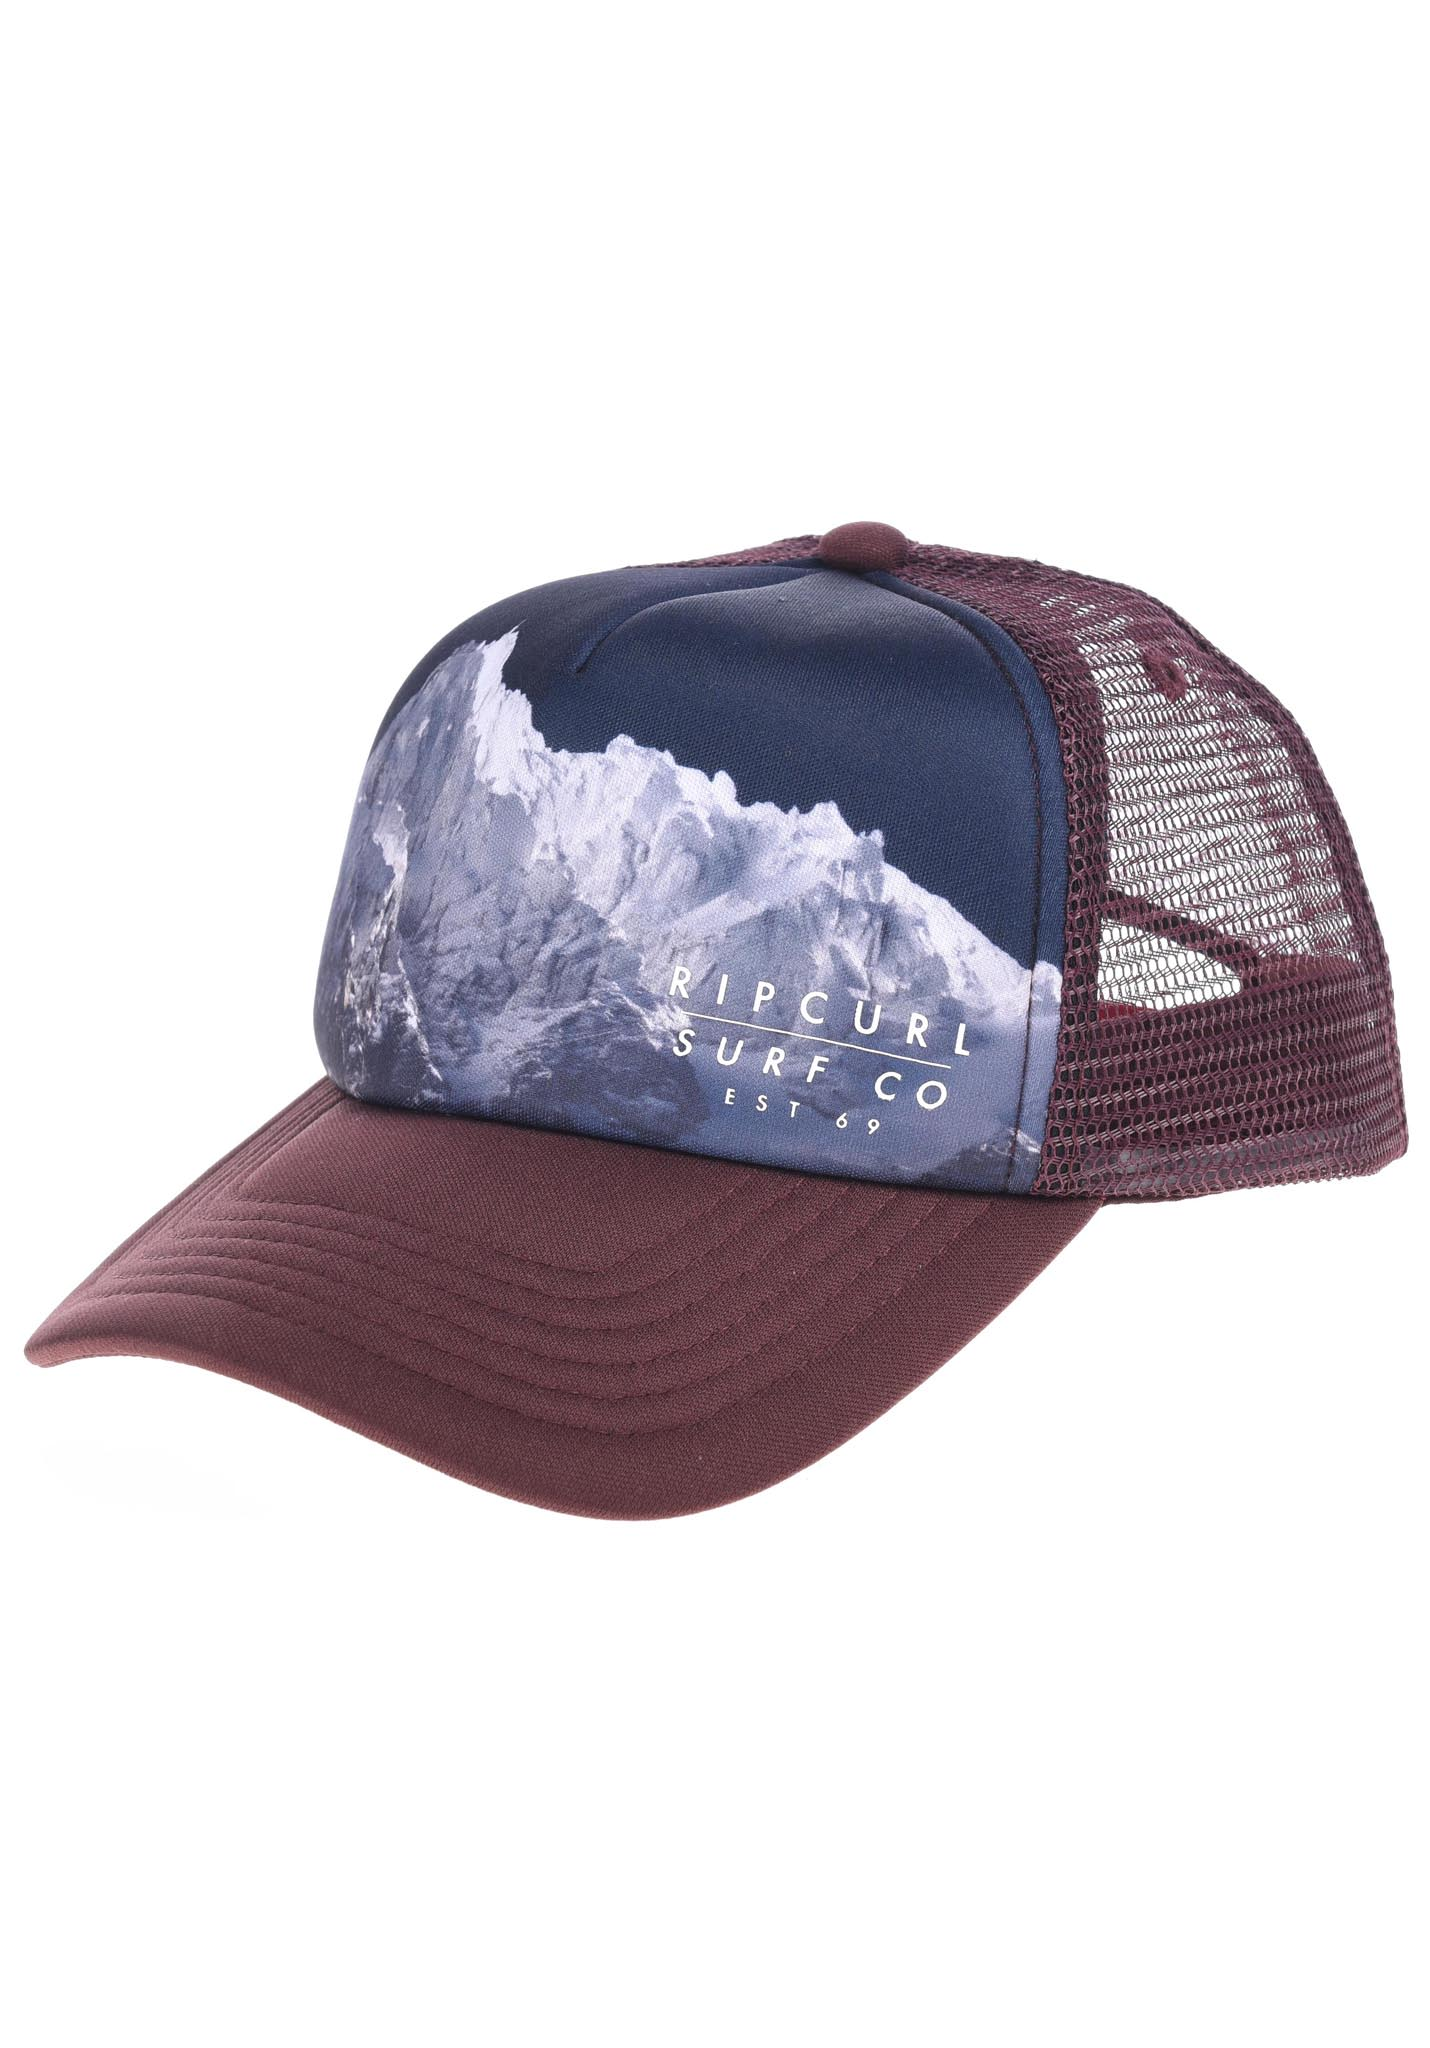 297ac230 Rip Curl Sublimation Photo - Trucker Cap for Kids Boys - Brown - Planet  Sports